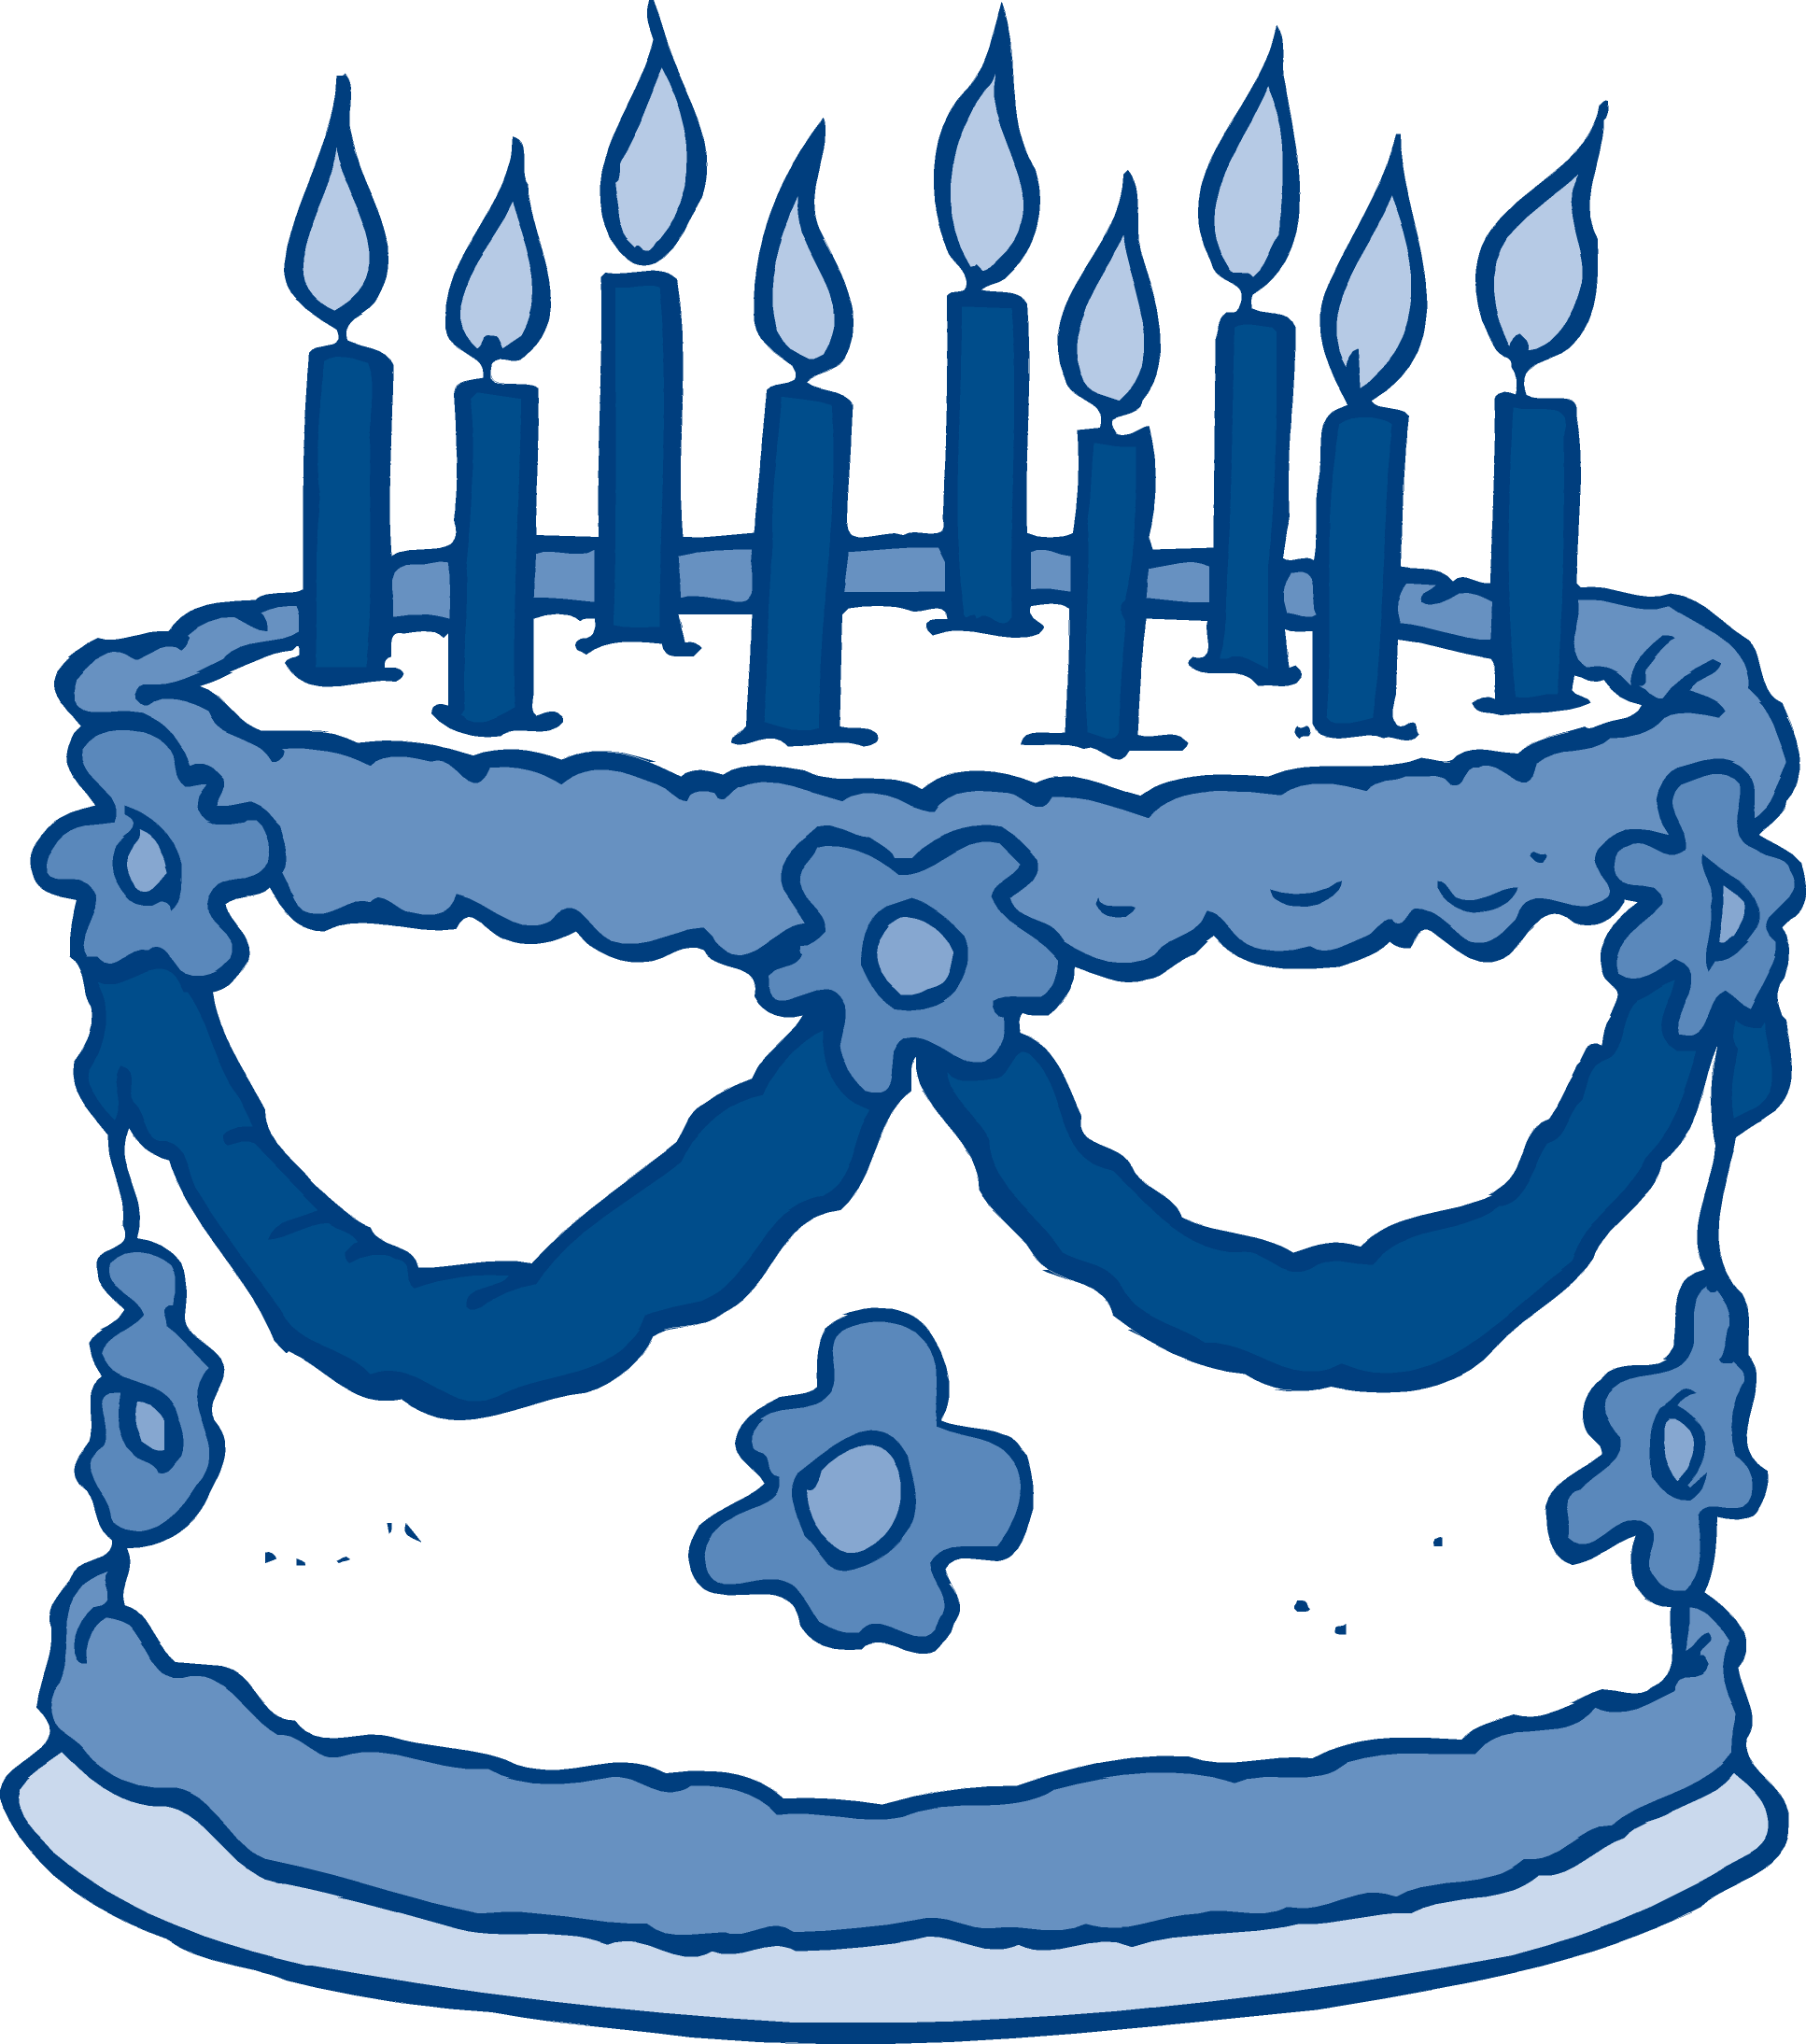 Blue birthday cake clipart.